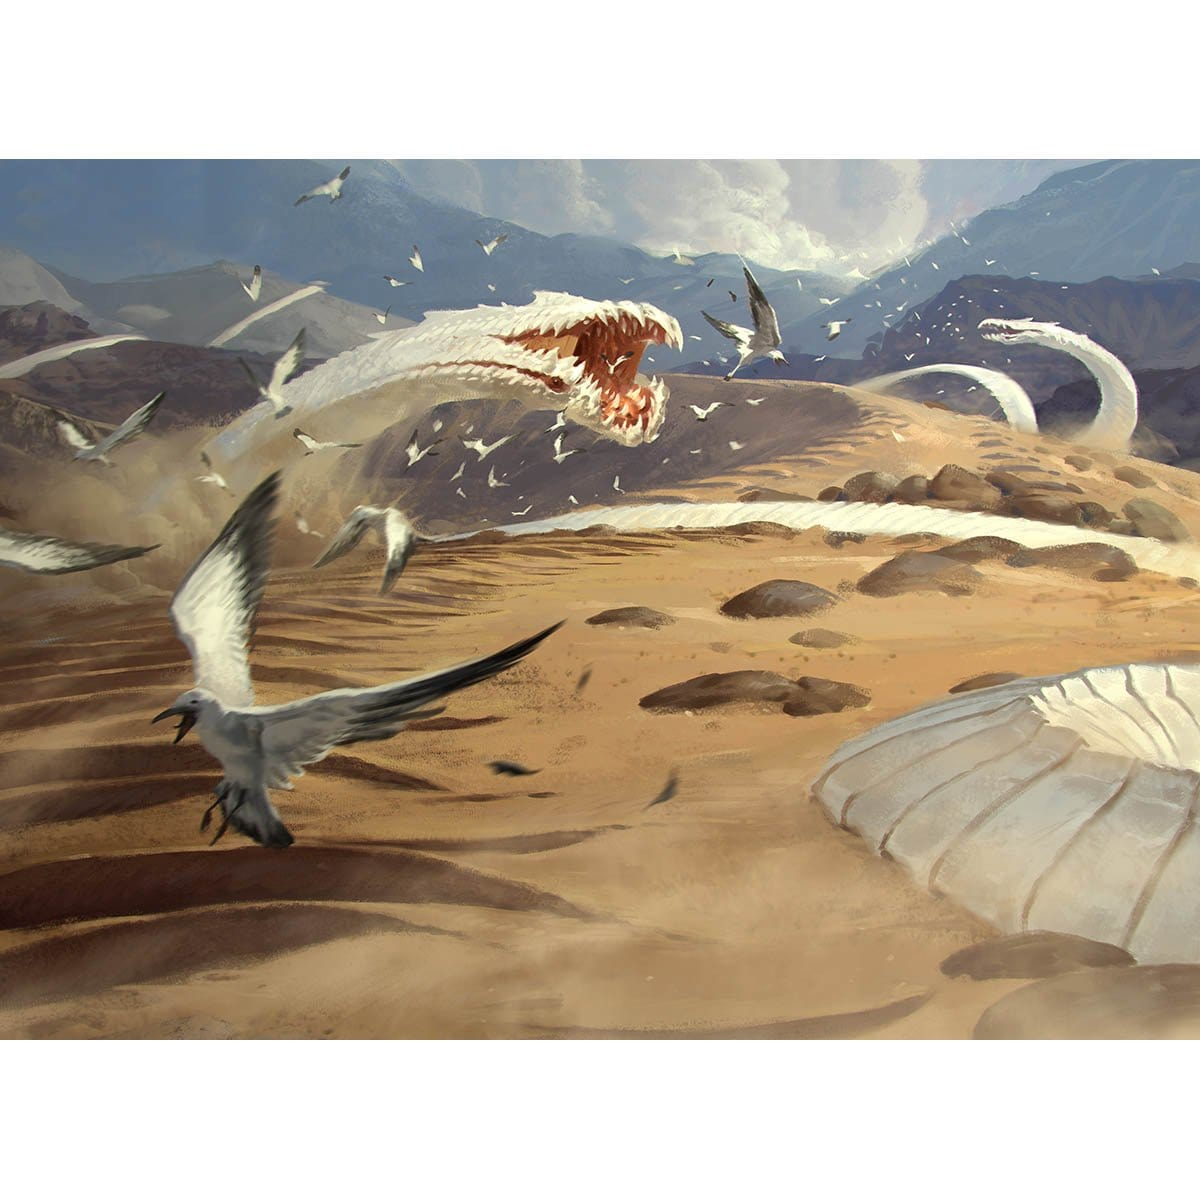 Sandwurm Convergence Print - Print - Original Magic Art - Accessories for Magic the Gathering and other card games